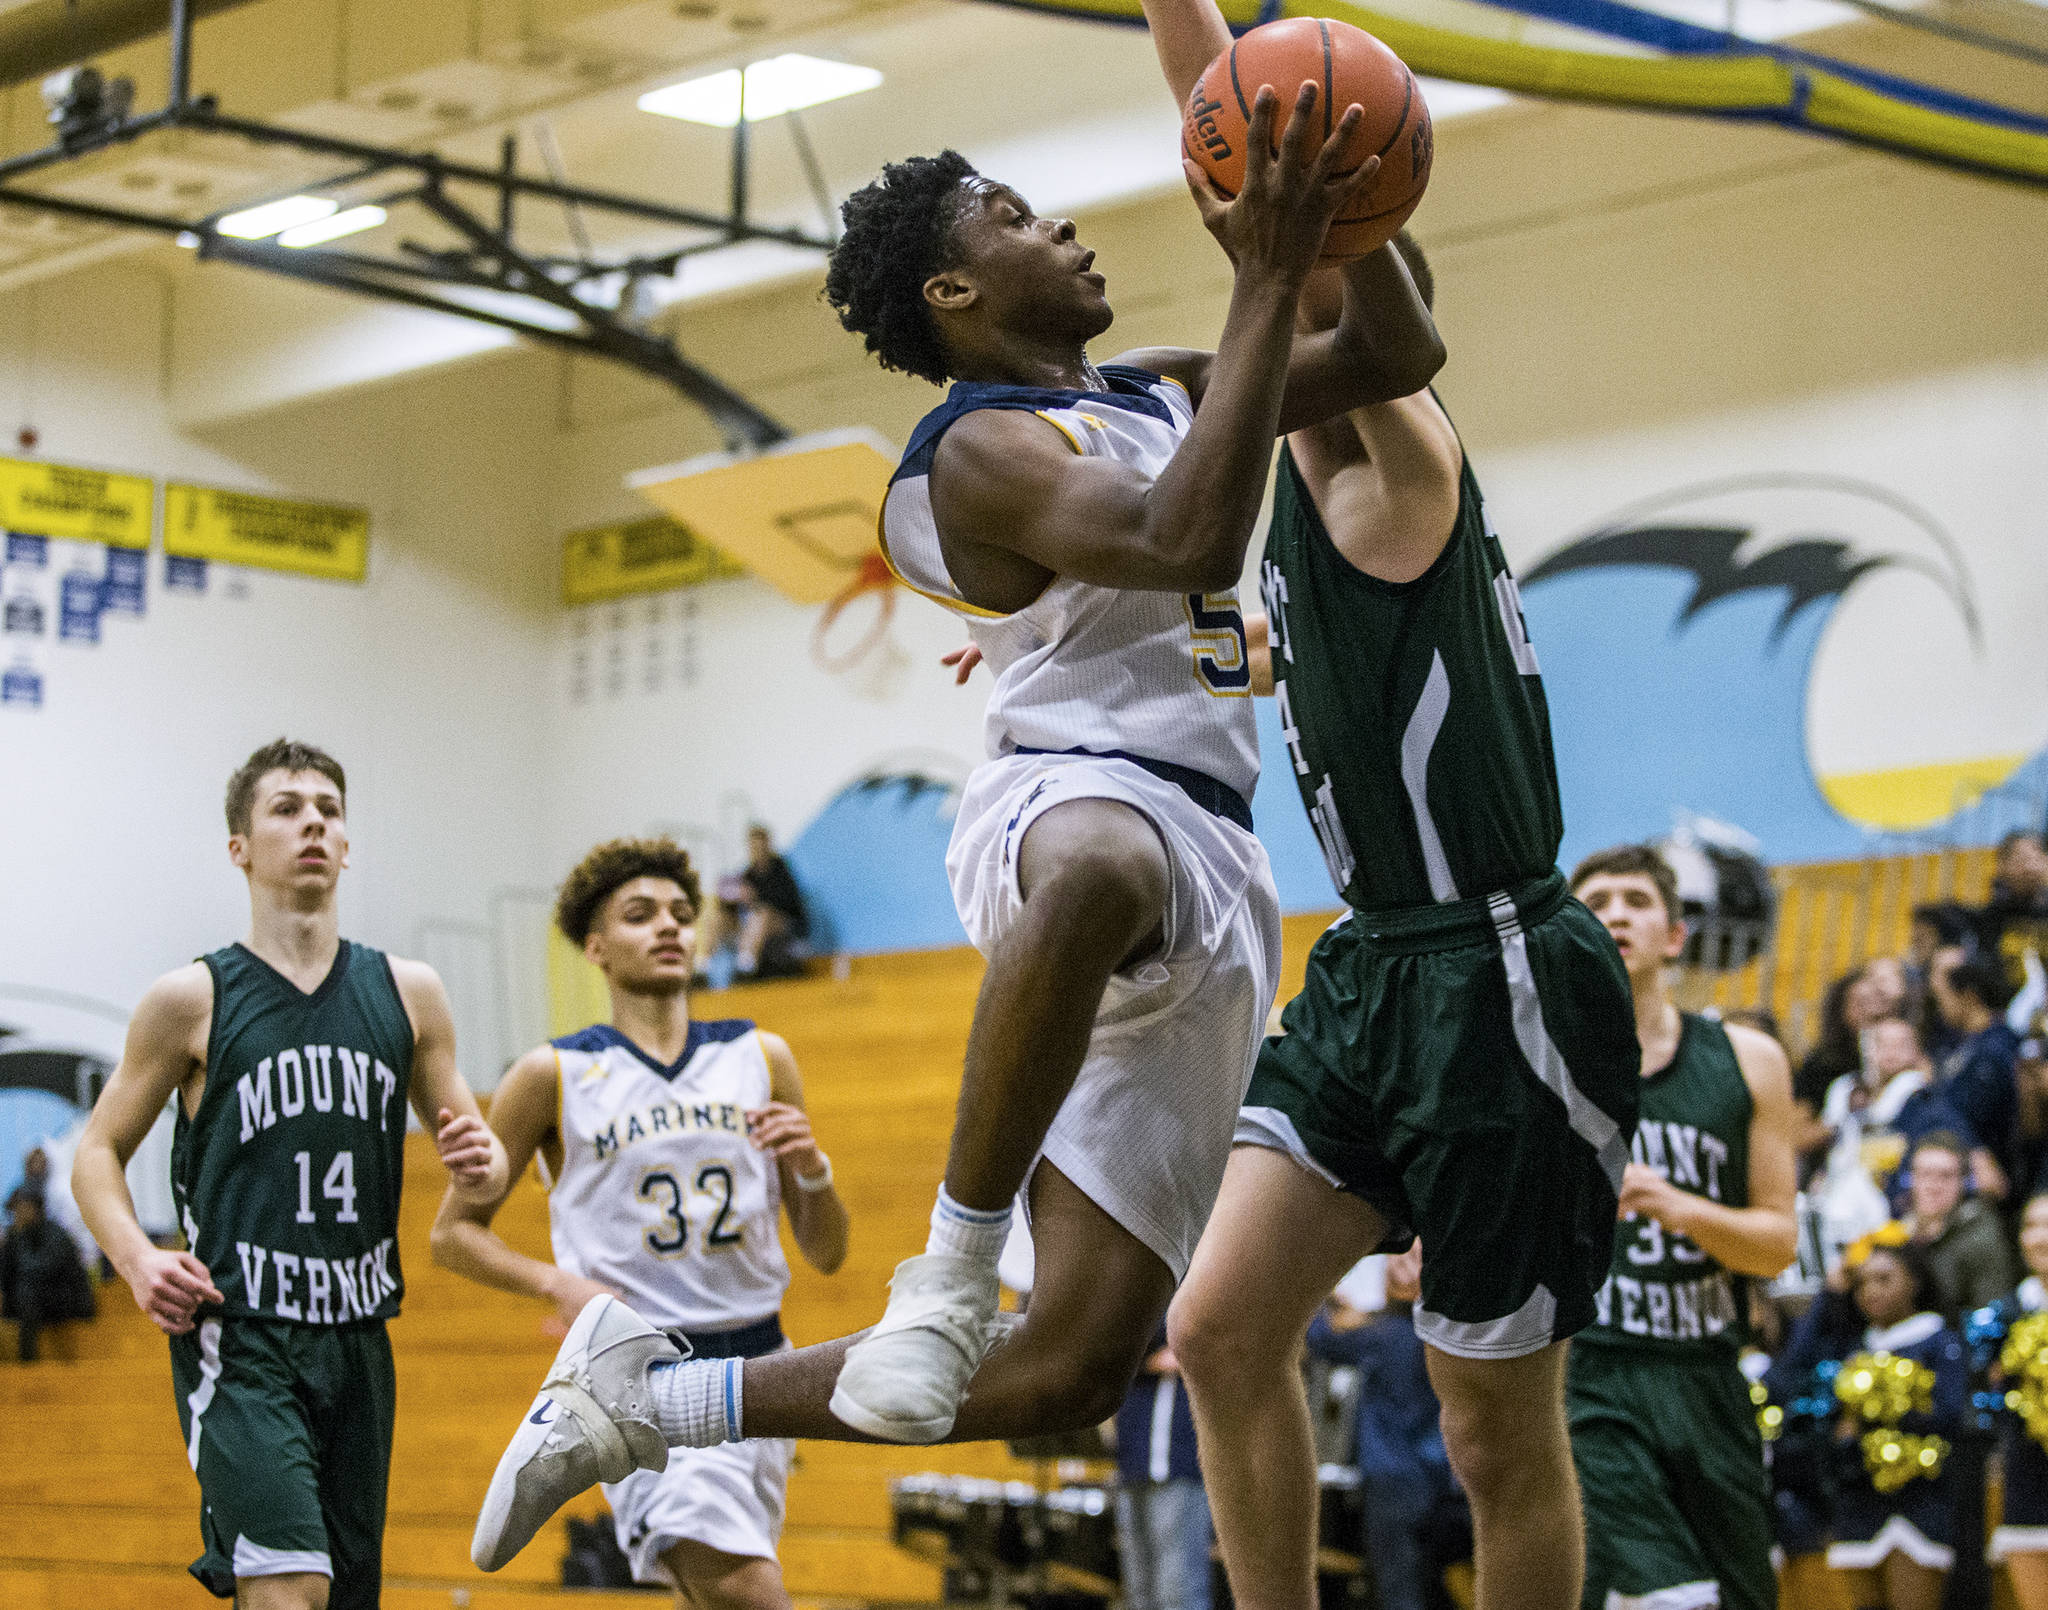 Point guard Edwin Bouah led Mariner to the state regionals and the program's first winning season since 2009. (Olivia Vanni / The Herald)